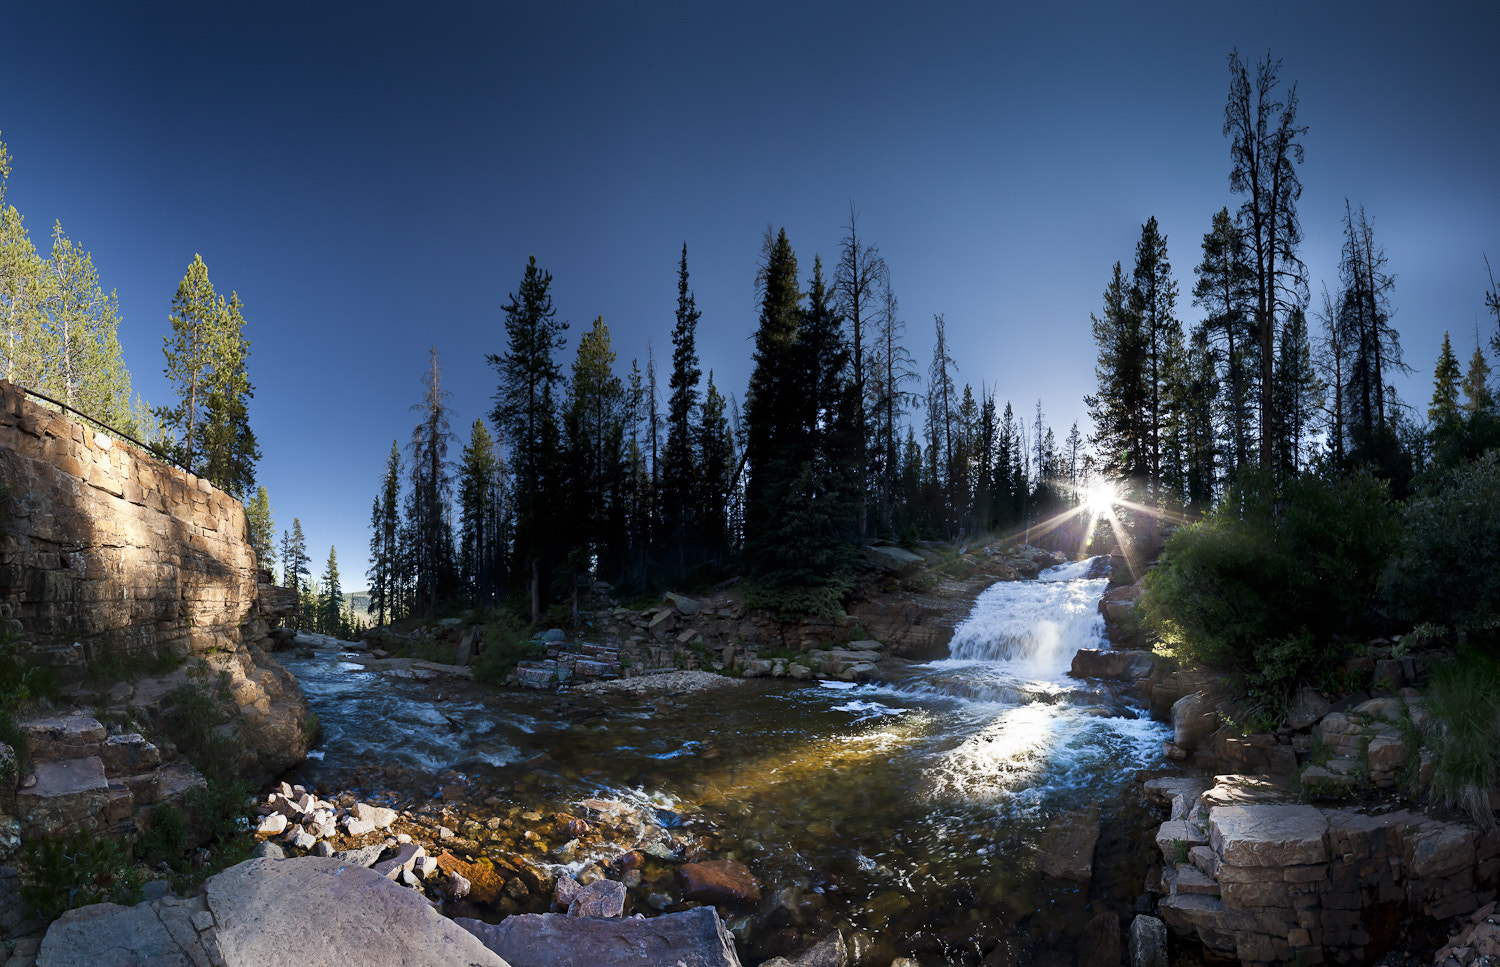 Photograph Provo Falls Panoramic by Clinton Melander on 500px